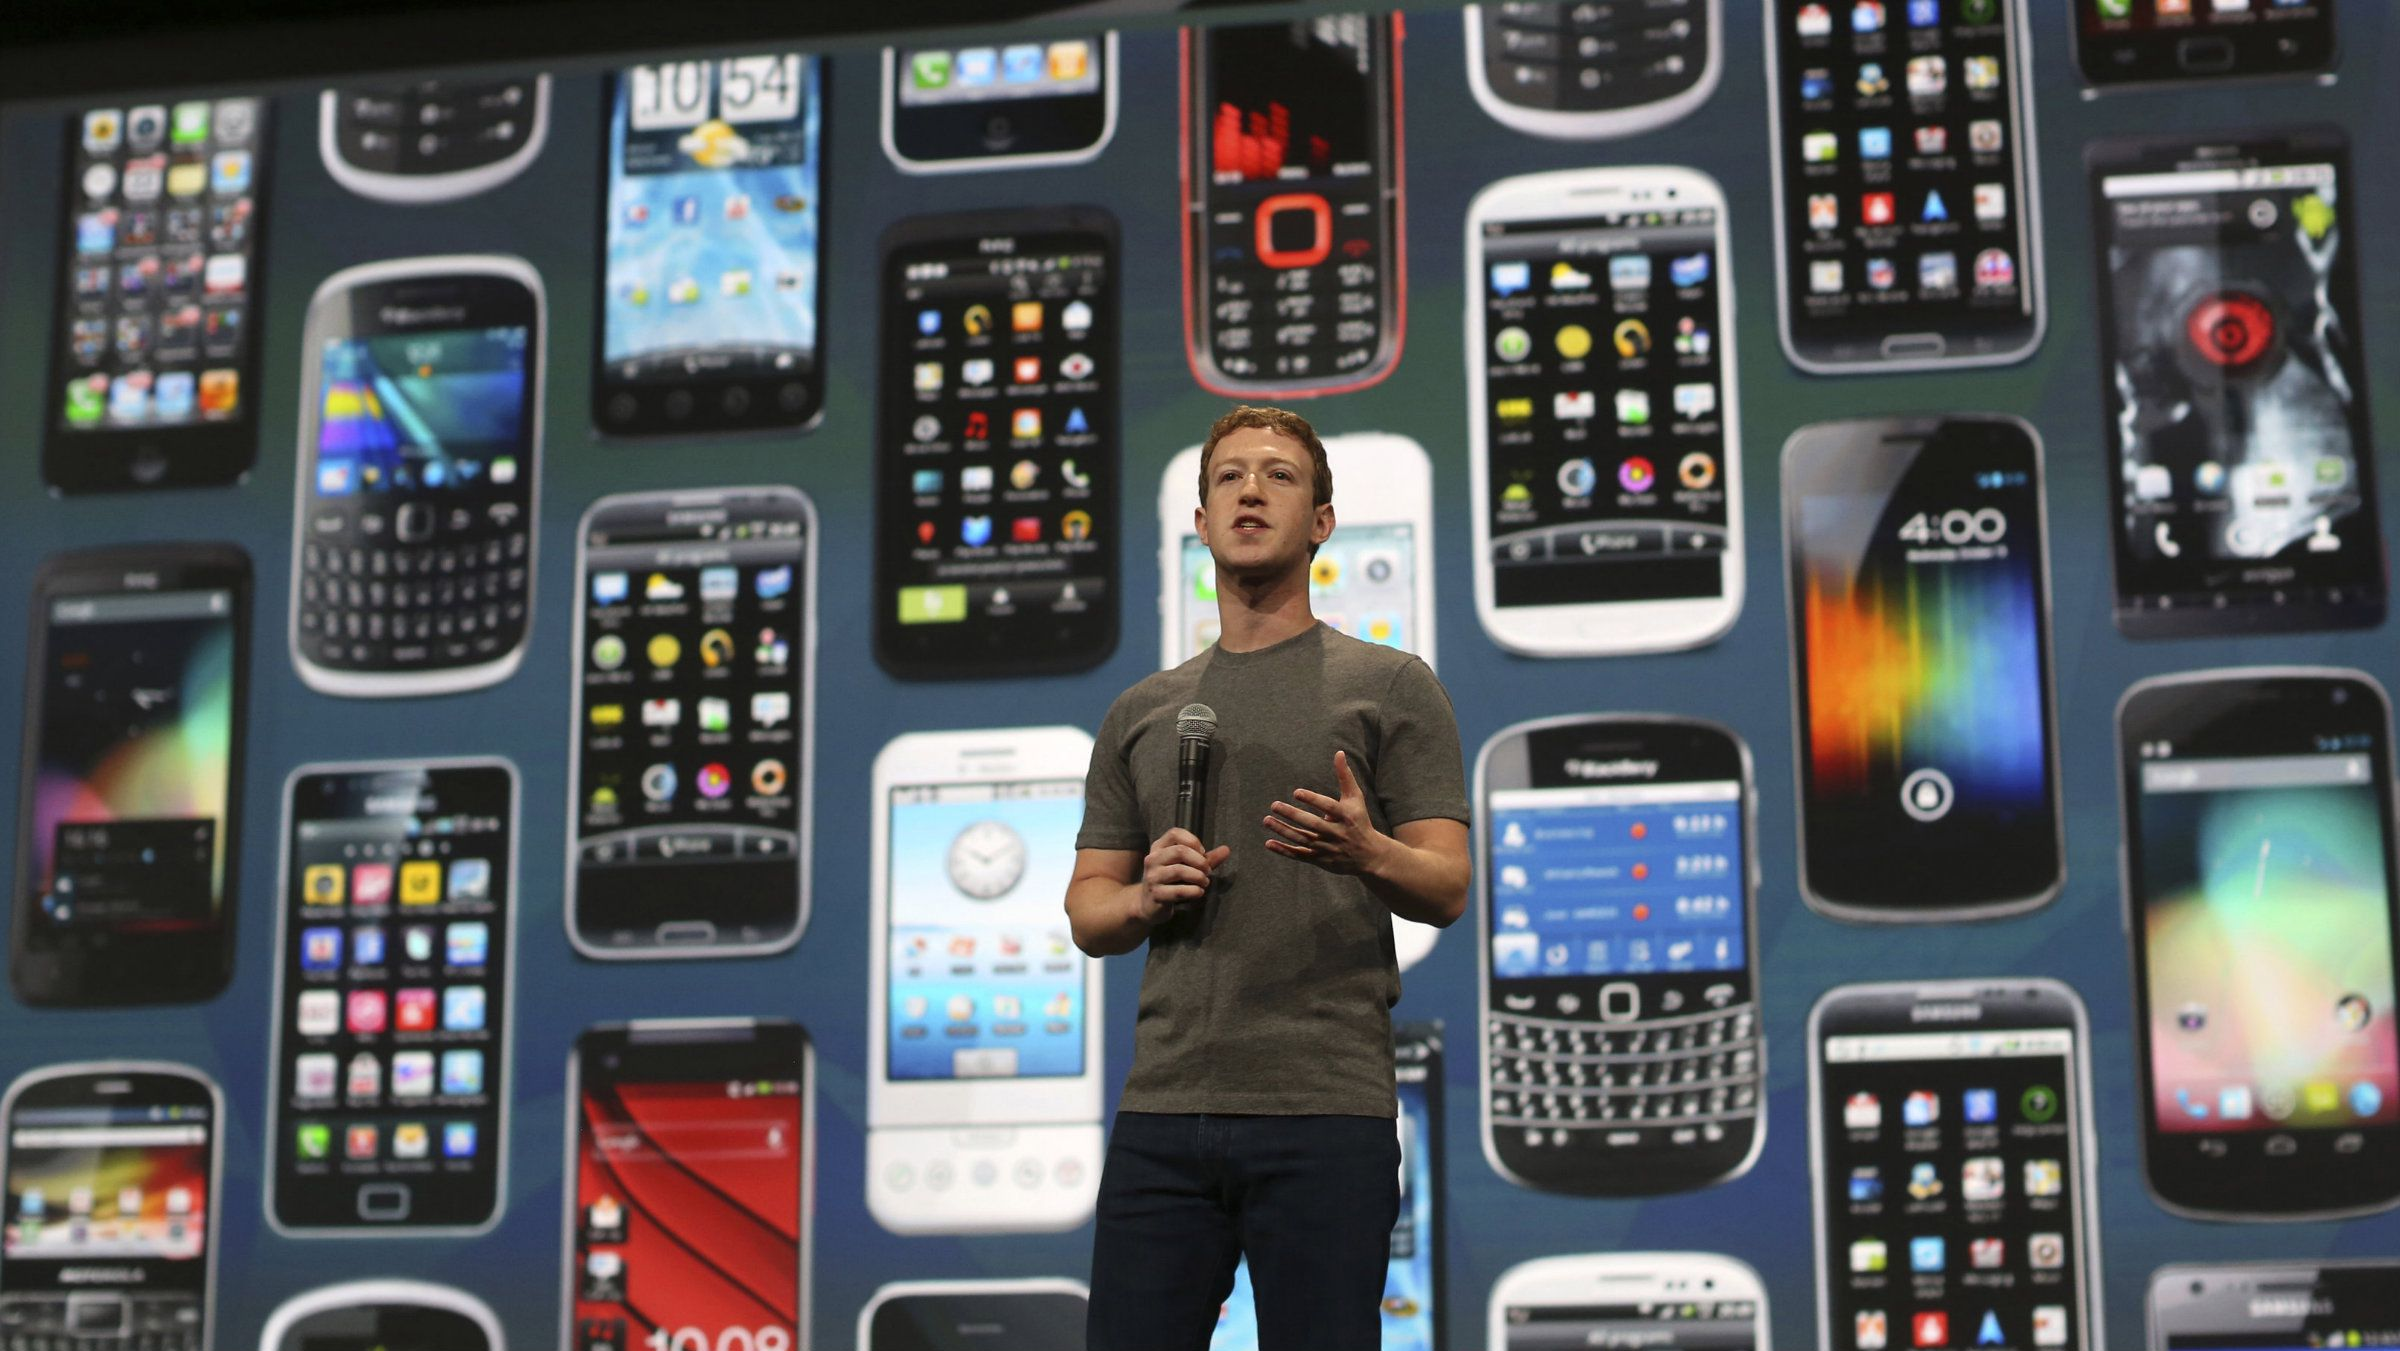 Facebook CEO Mark Zuckerberg speaks during his keynote address at Facebook's f8 developers conference in San Francisco, California April 30, 2014. REUTERS/Robert Galbraith